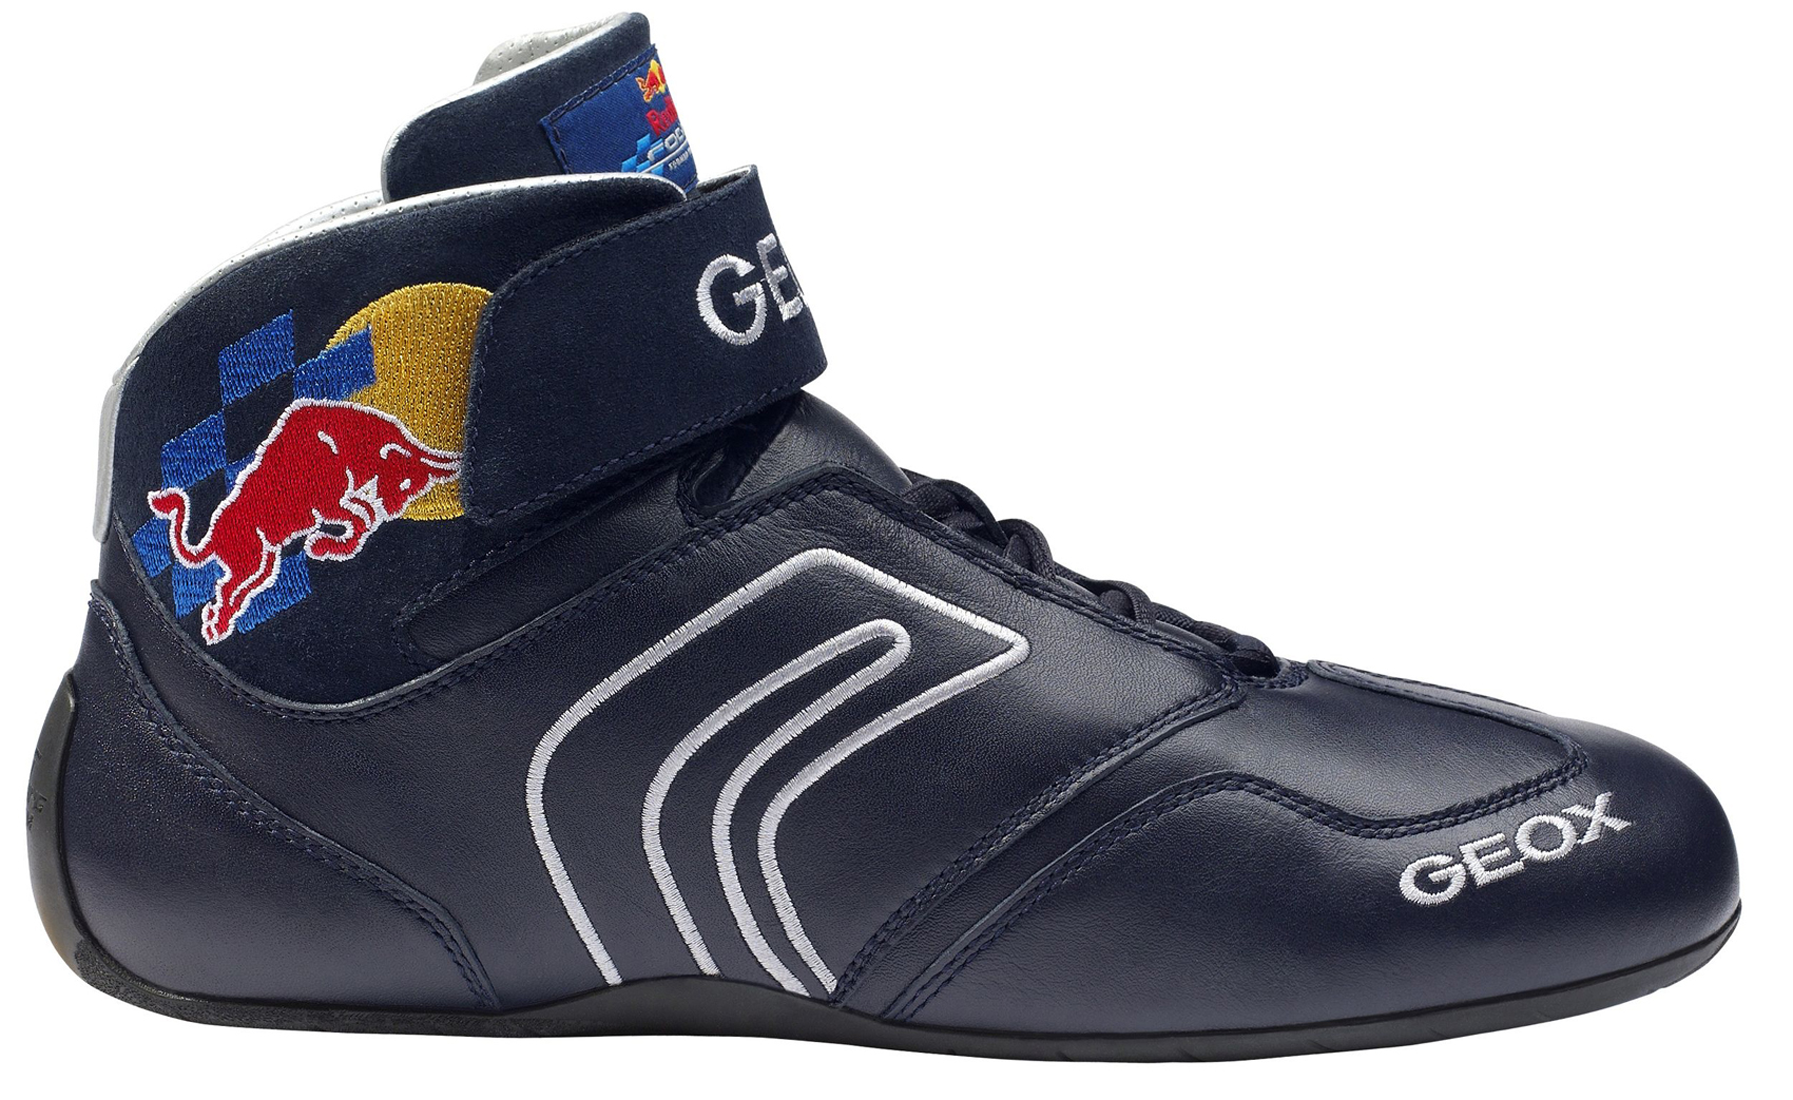 Racing Shoes: Red Bull Racing Shoes Geox